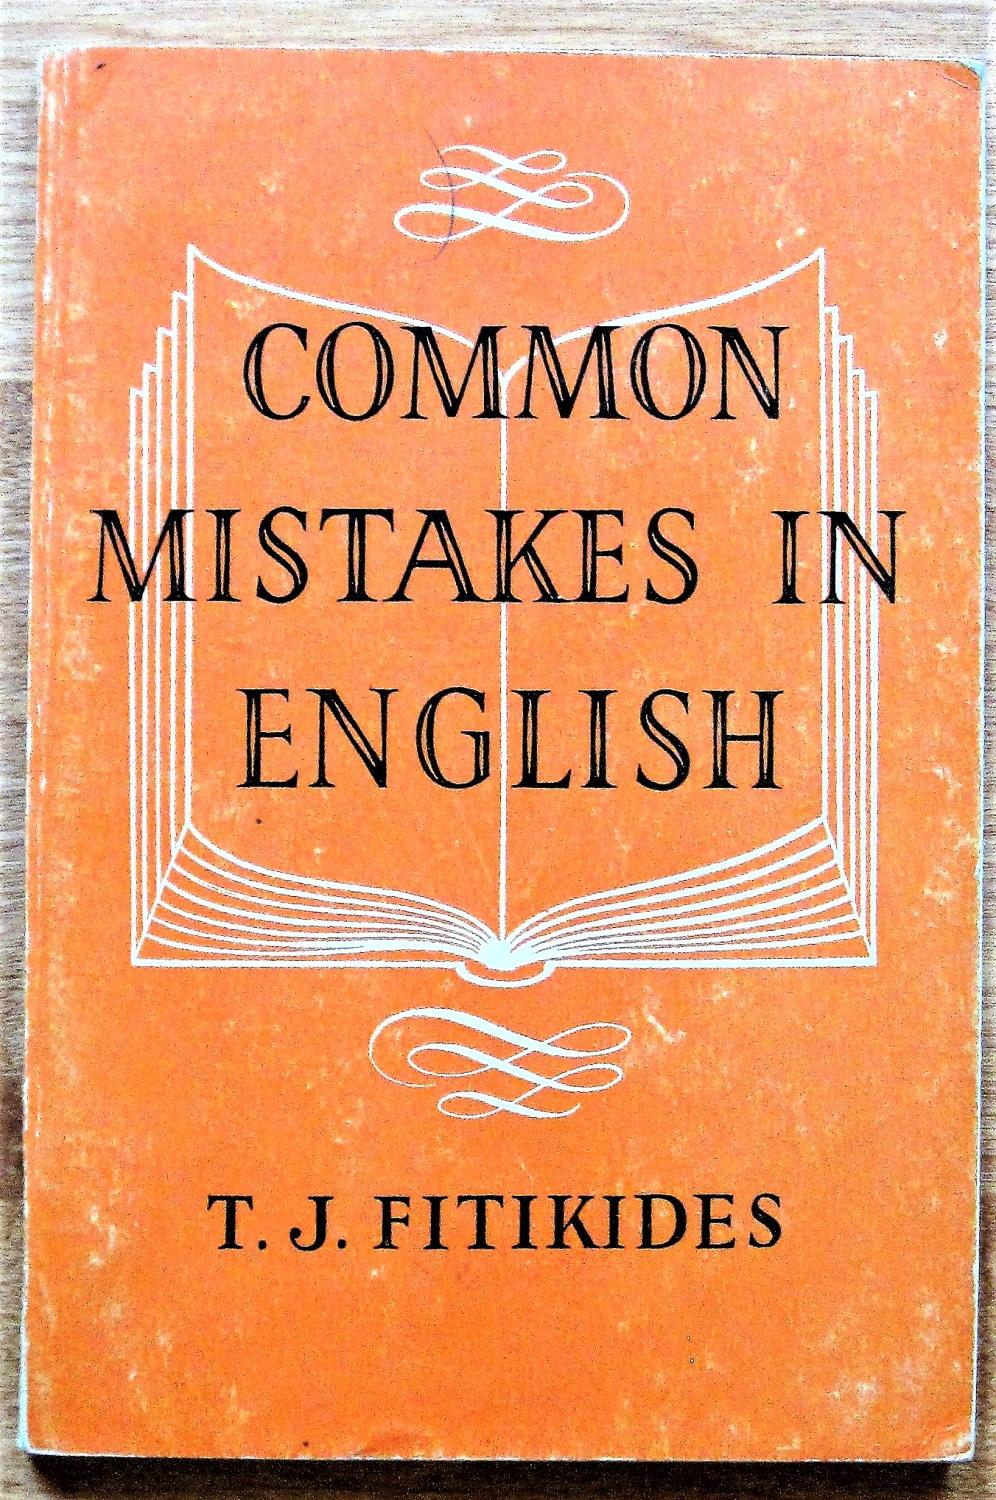 The Book Common Mistakes In English